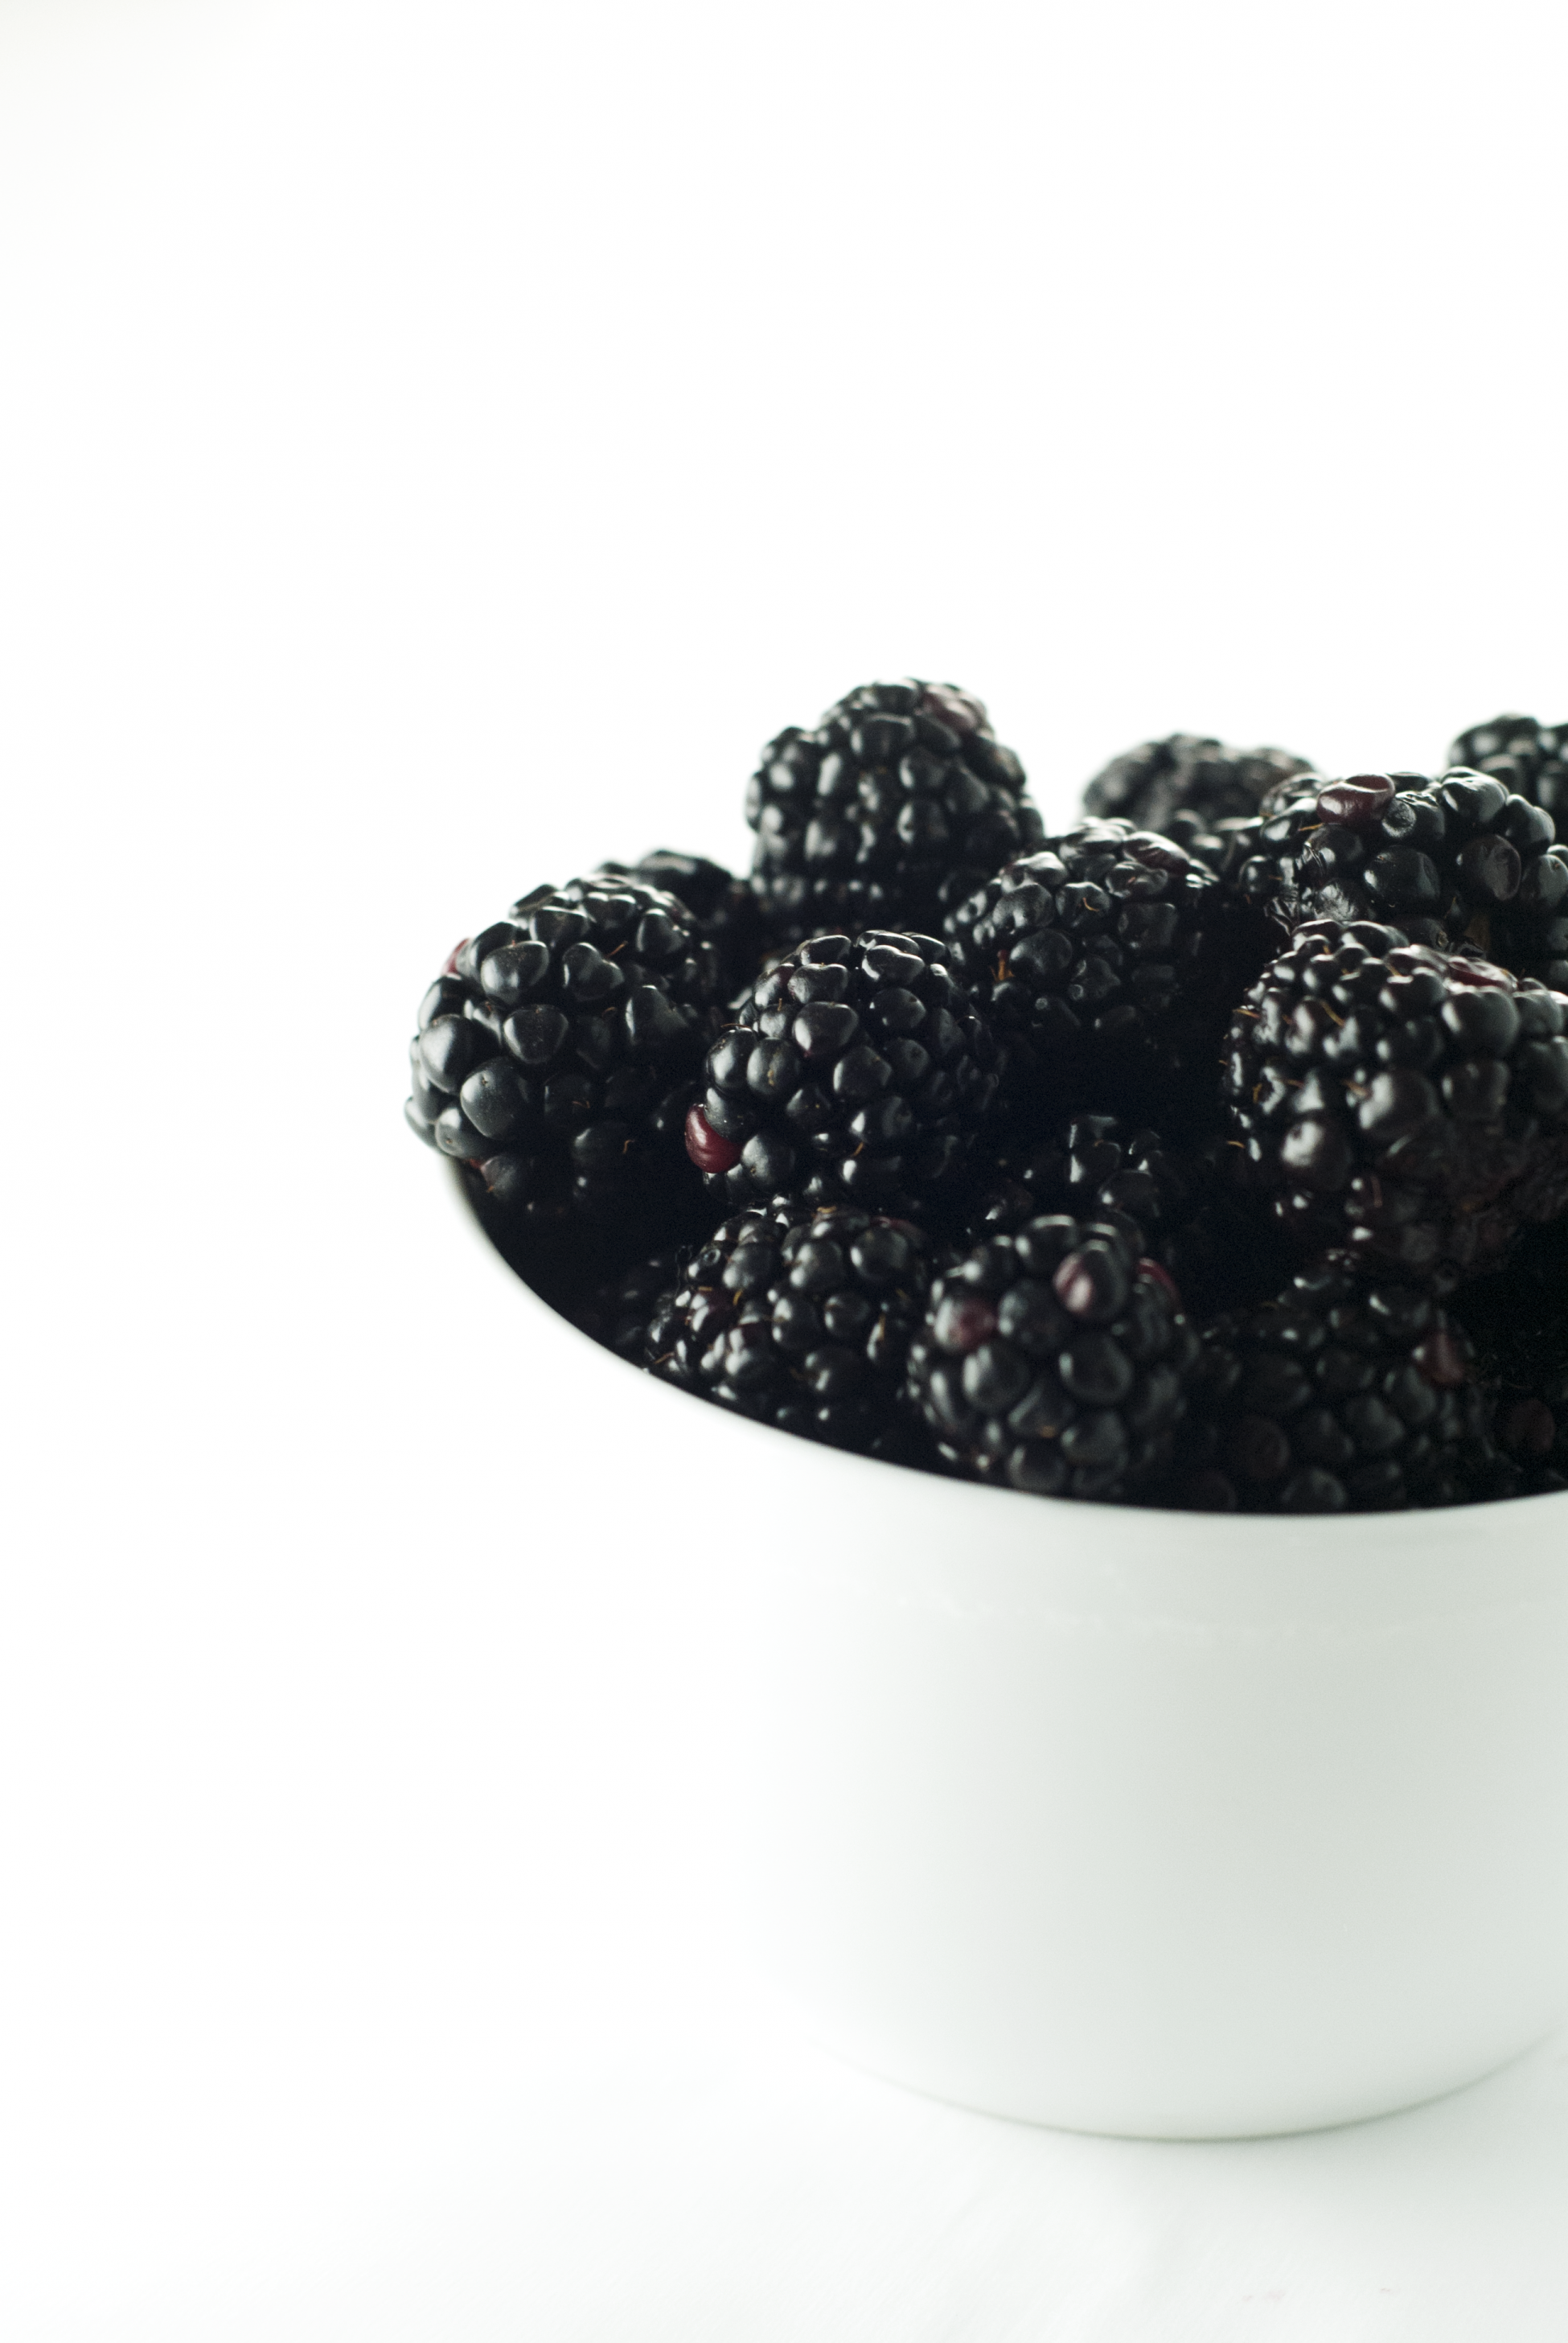 Big Bowl of Blackberries